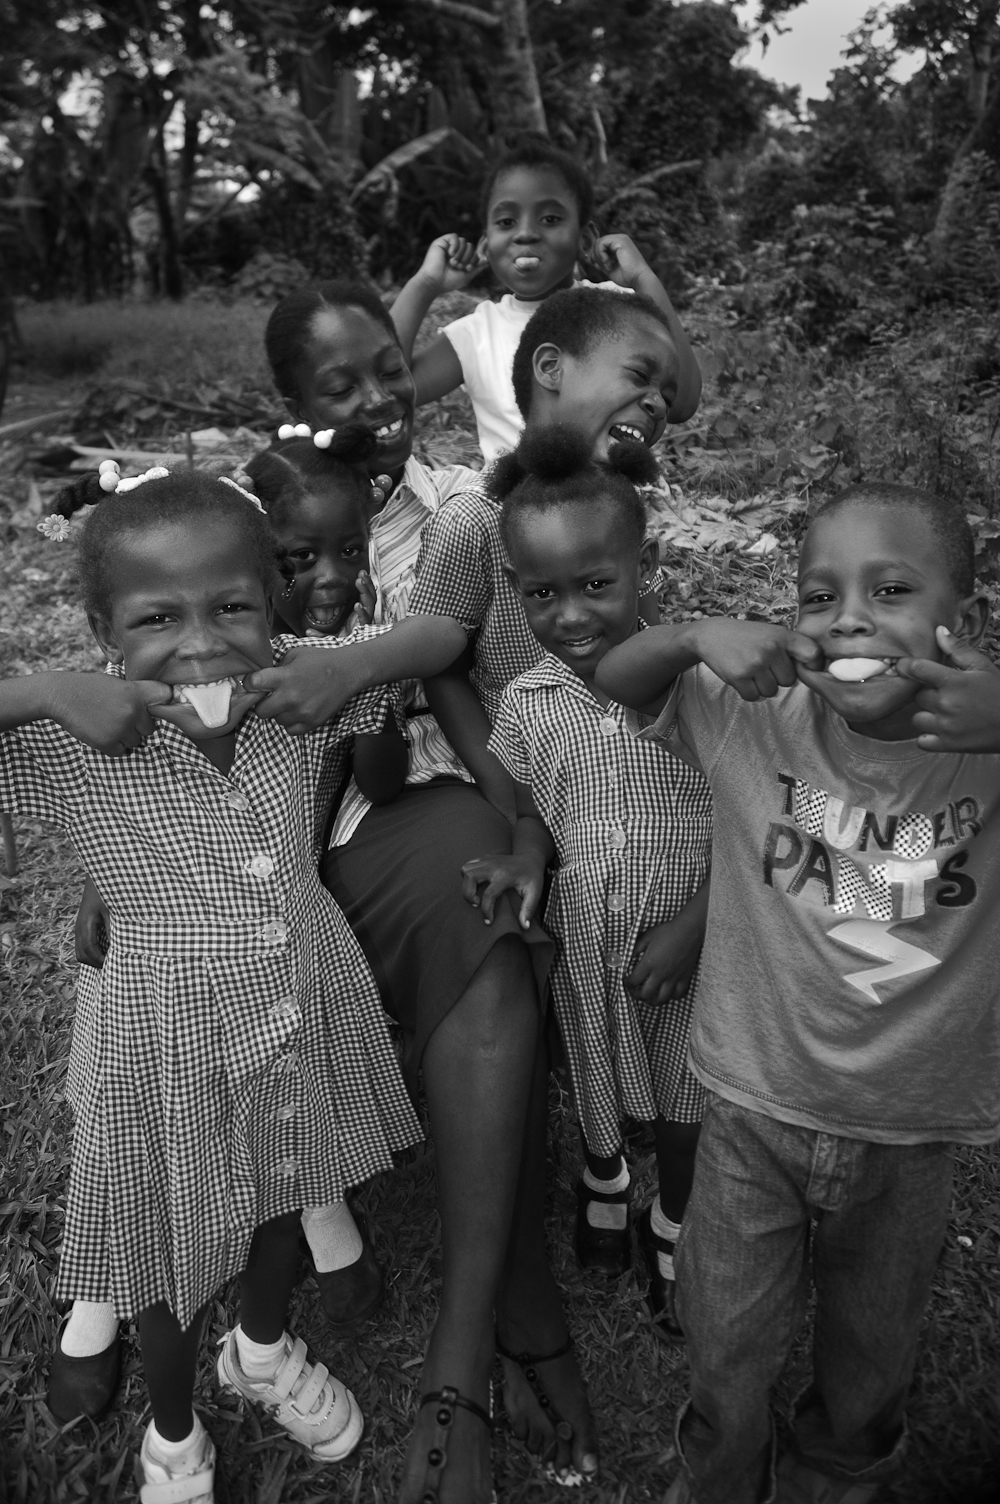 Kids in Jamaica making faces